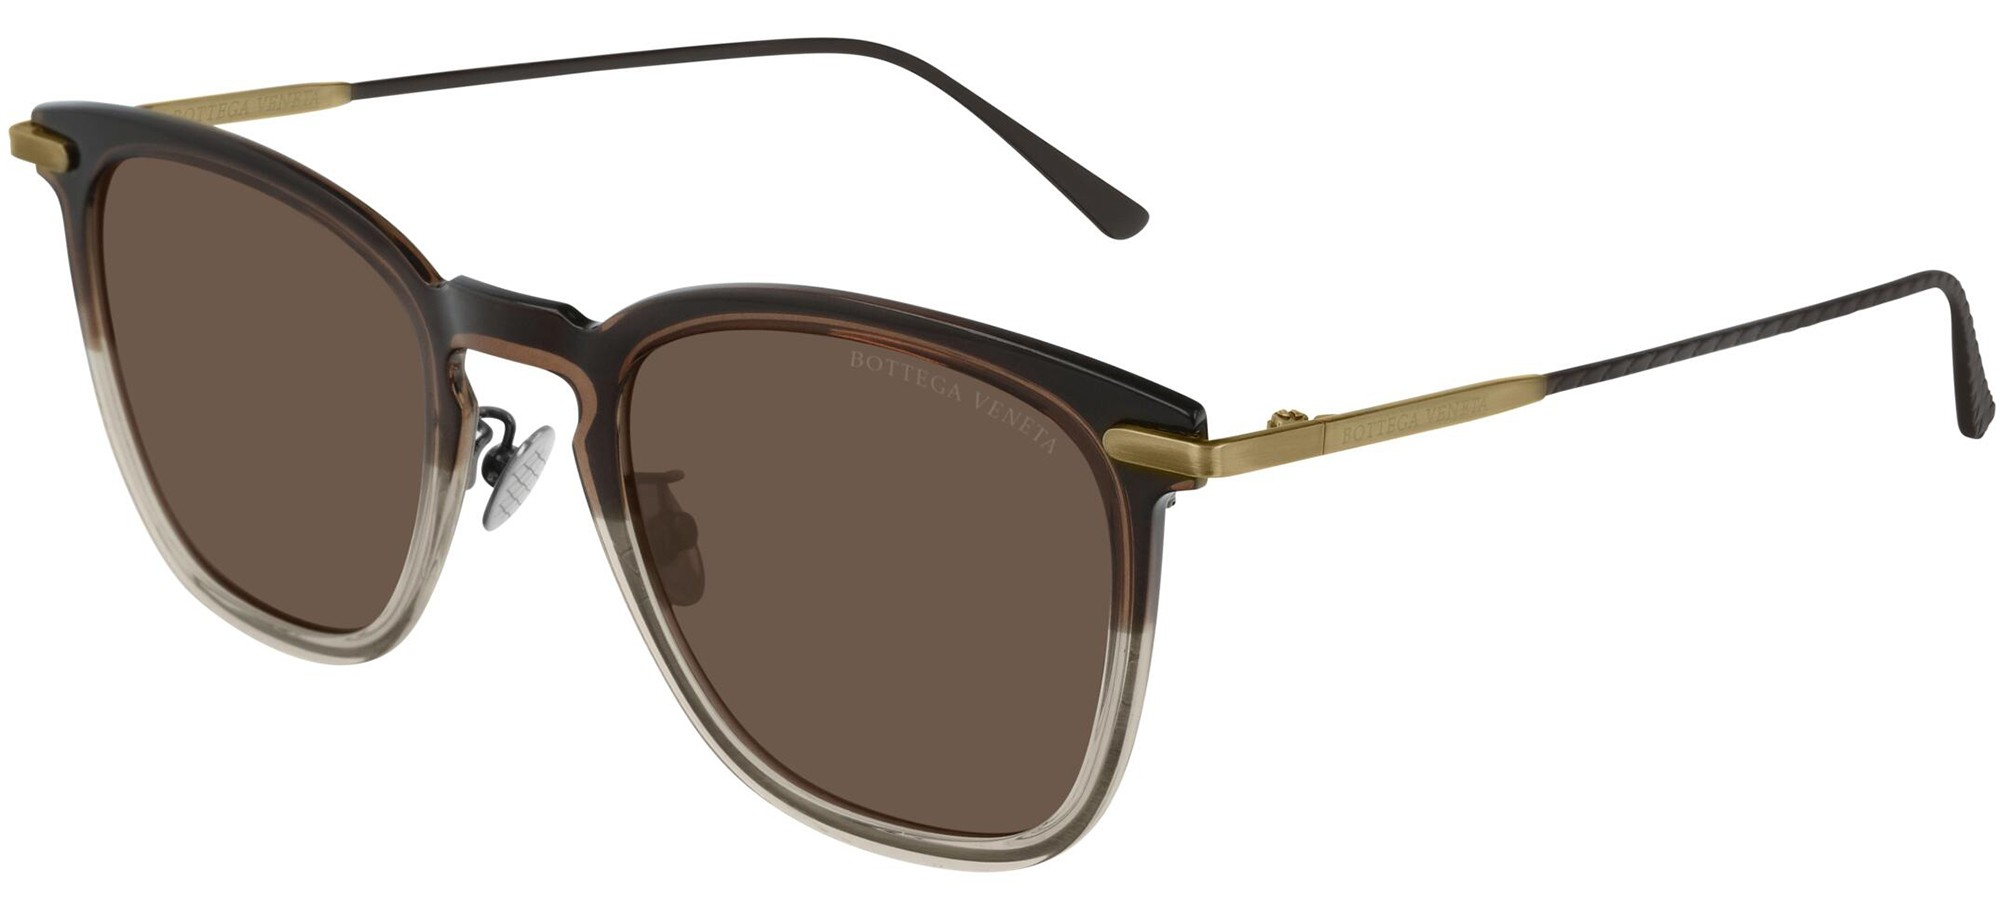 Bottega Veneta sunglasses BV0244S